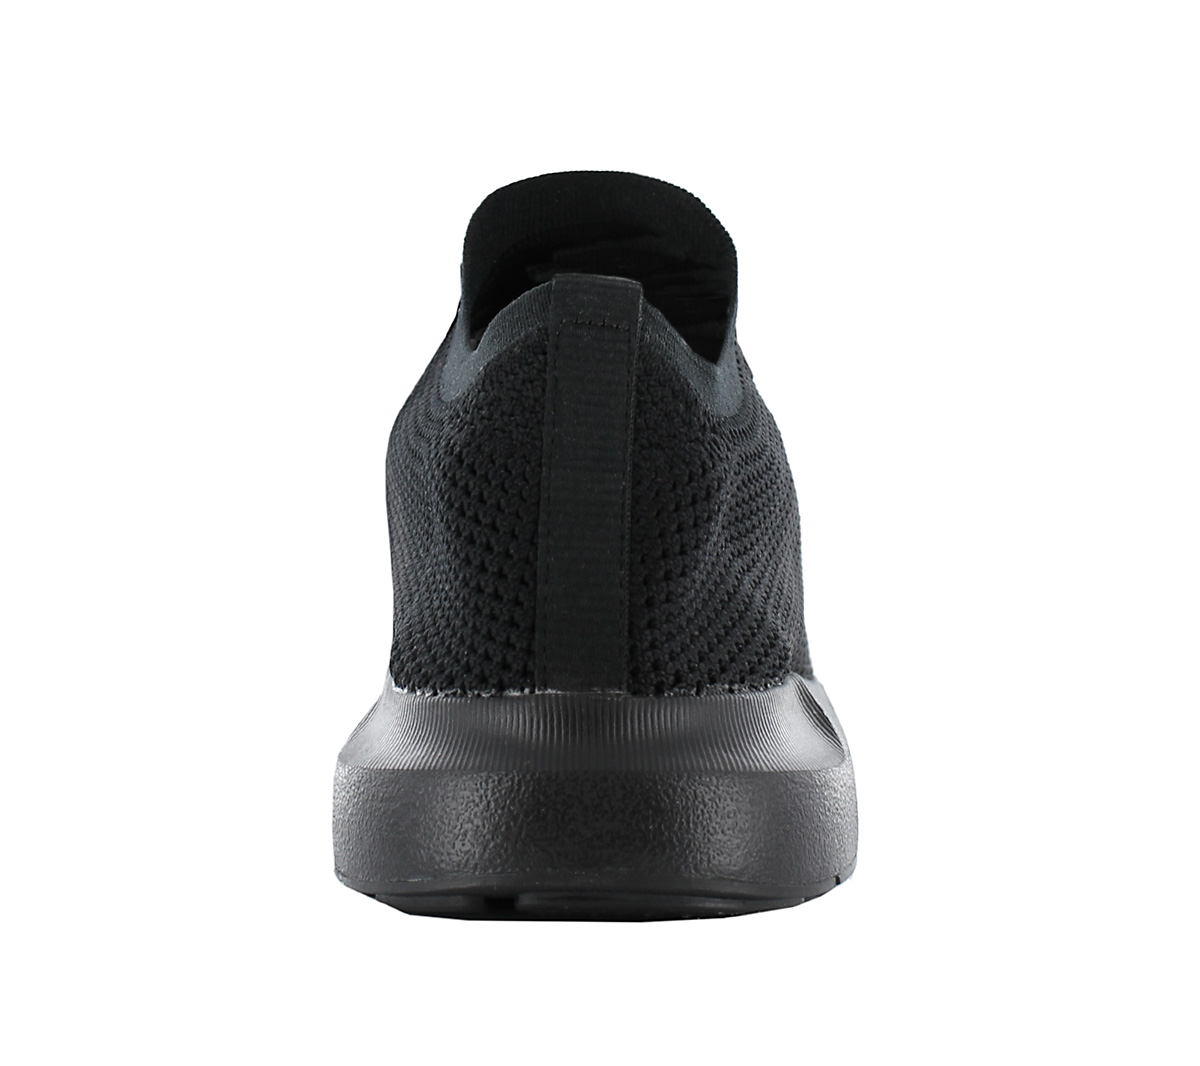 499fe6d888571 NEW adidas Swift Run PK CQ2893 Men  s Shoes Trainers Sneakers SALE ...